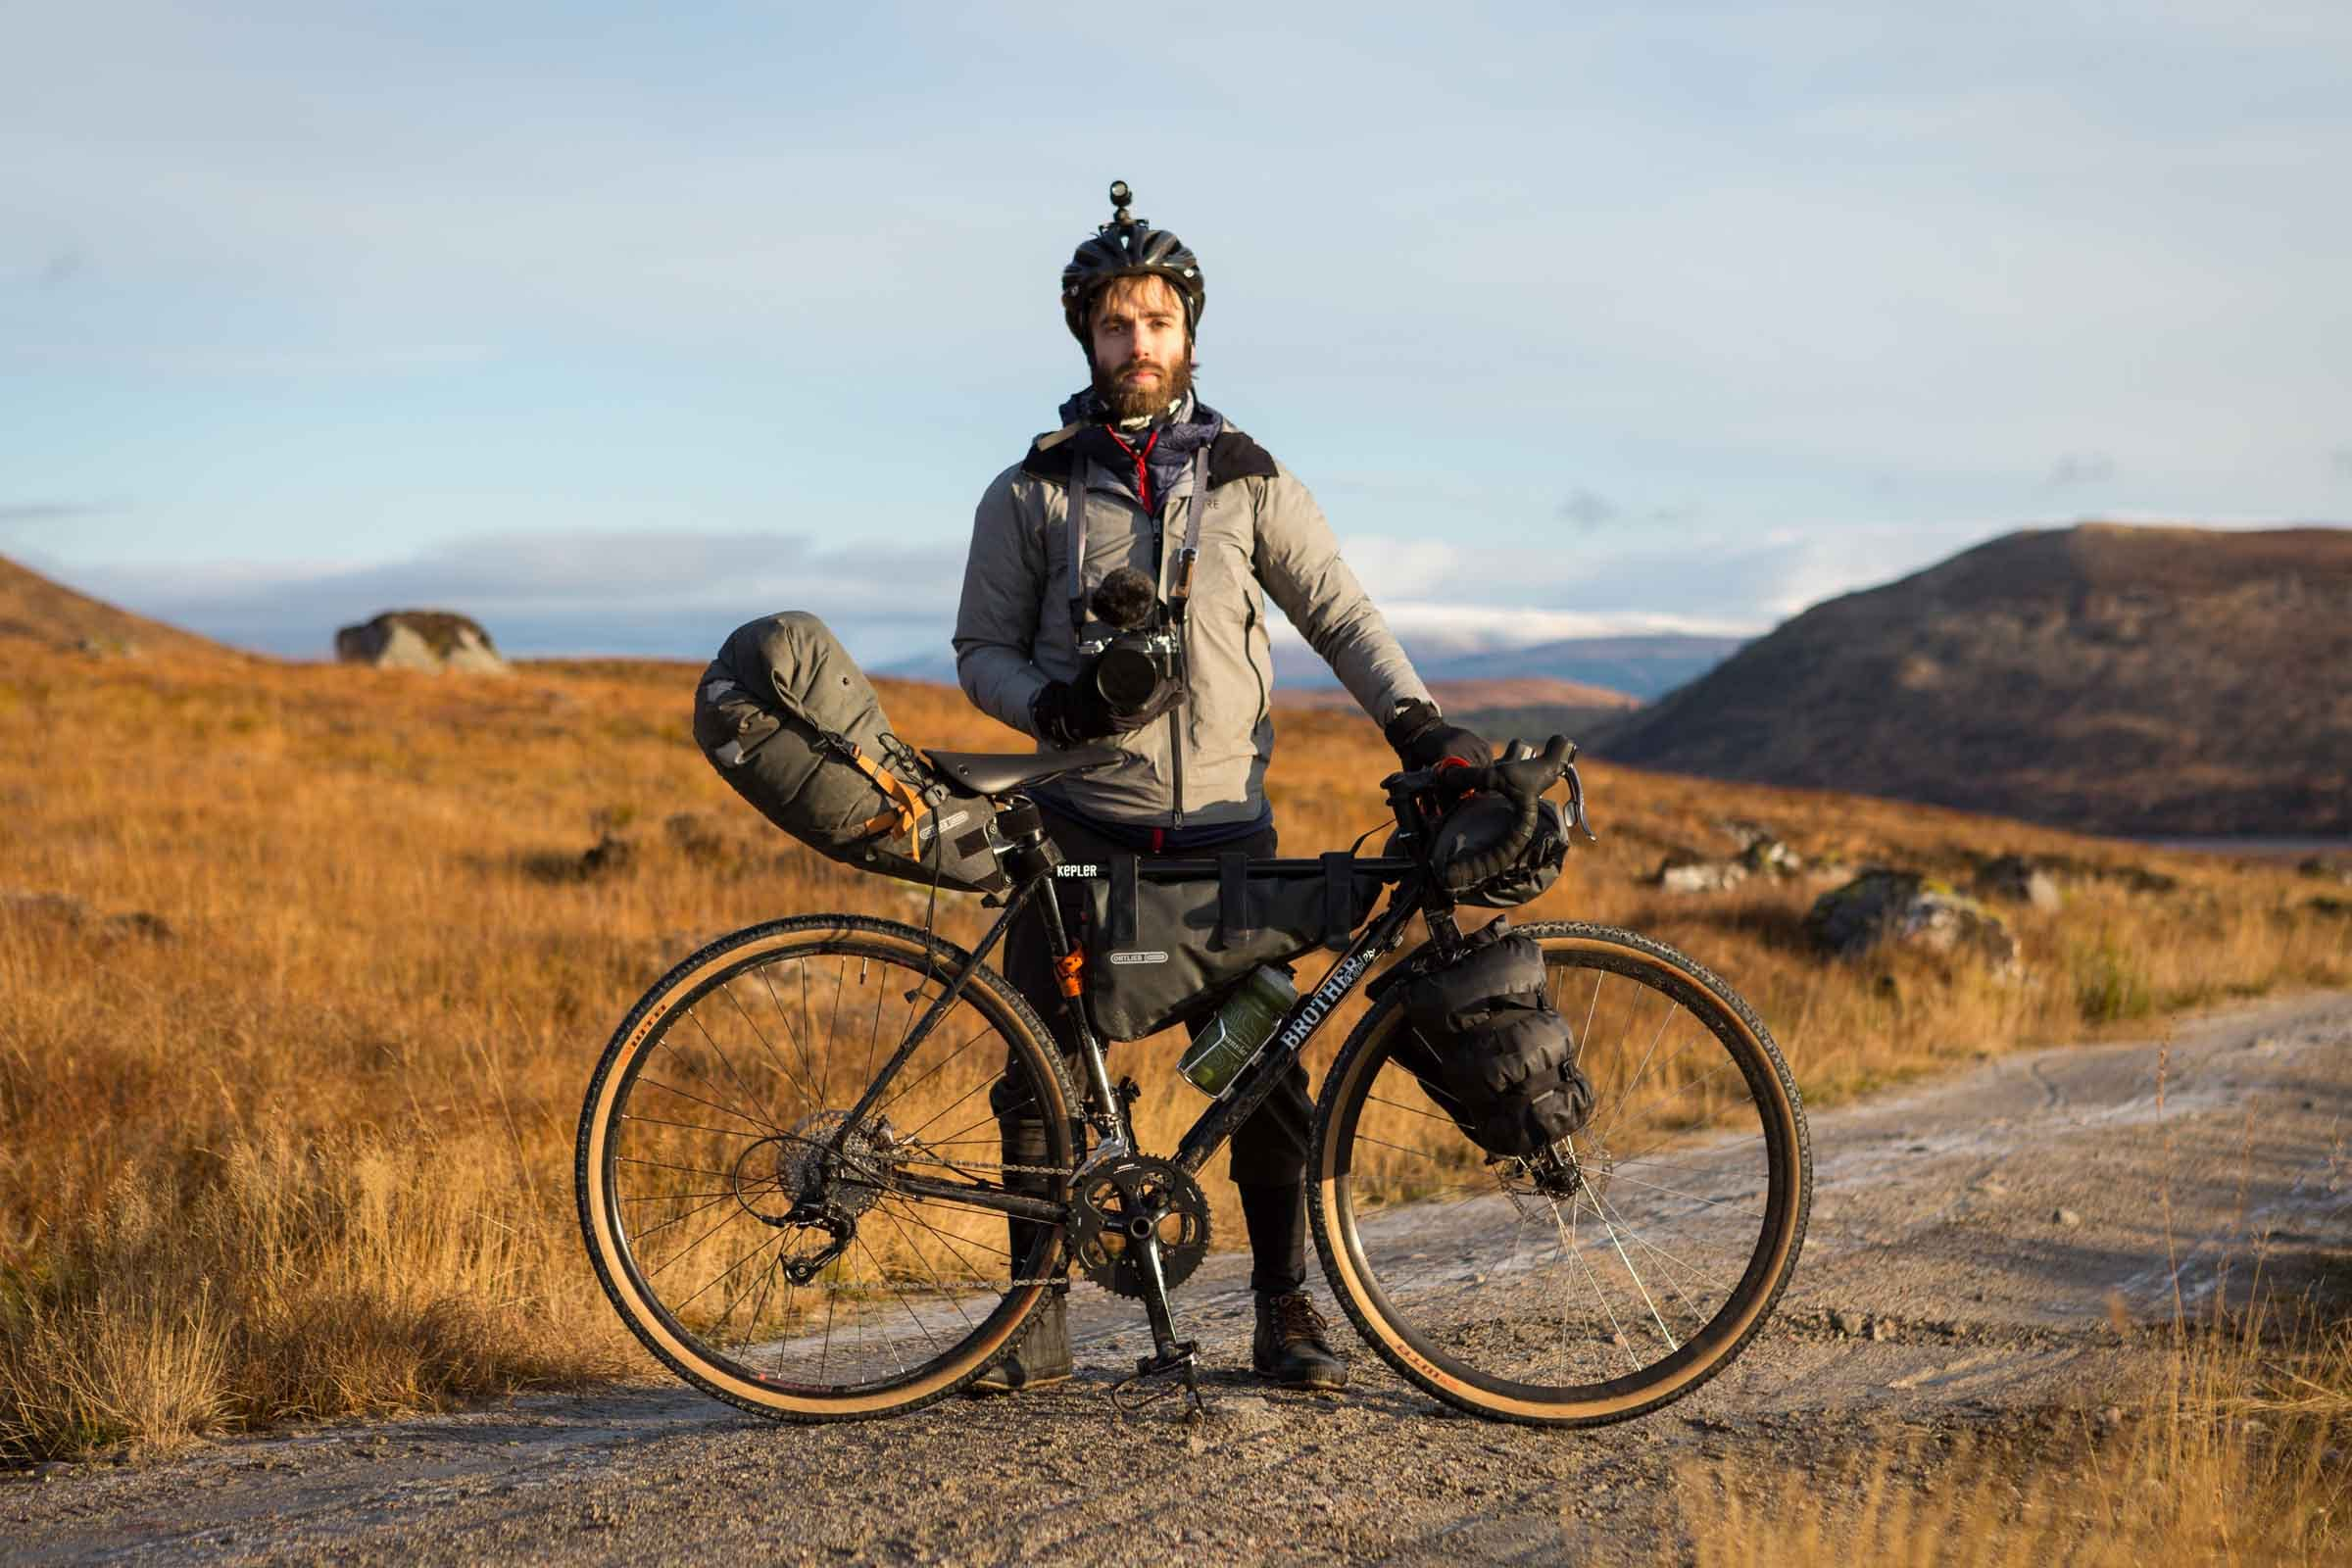 Pannier_Rainspotting_Bikepacking-Scotland-Highlands_060